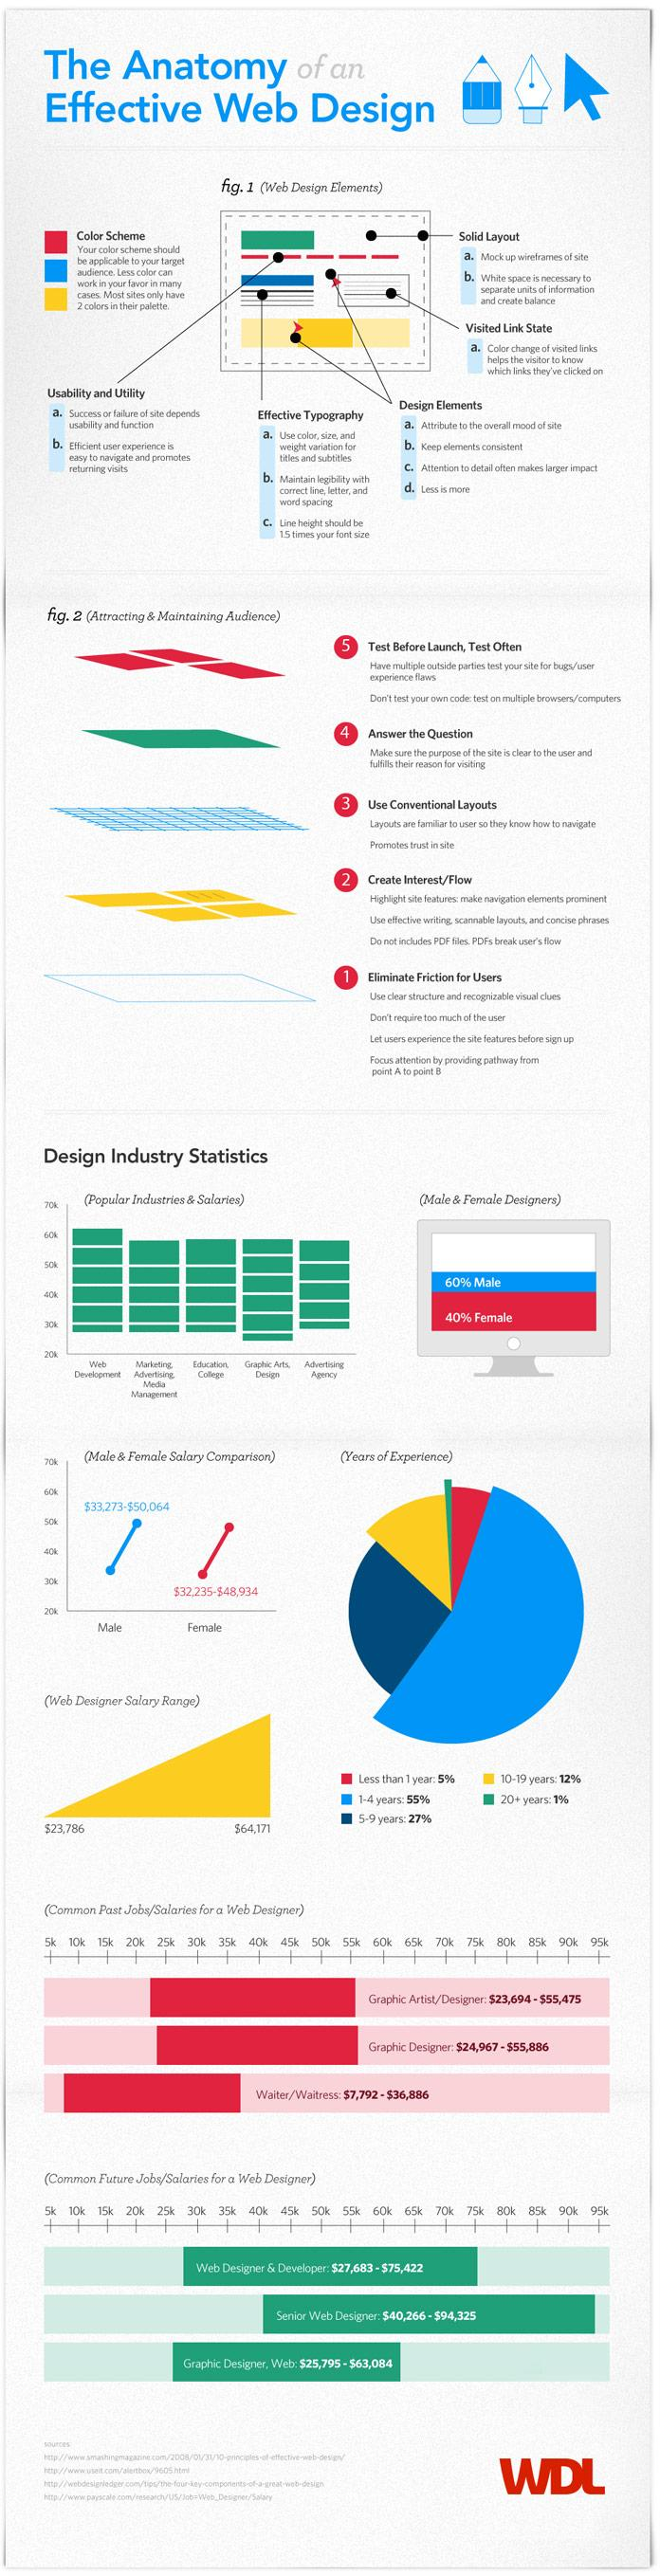 The Anatomy of an Effective Web Design | infographics